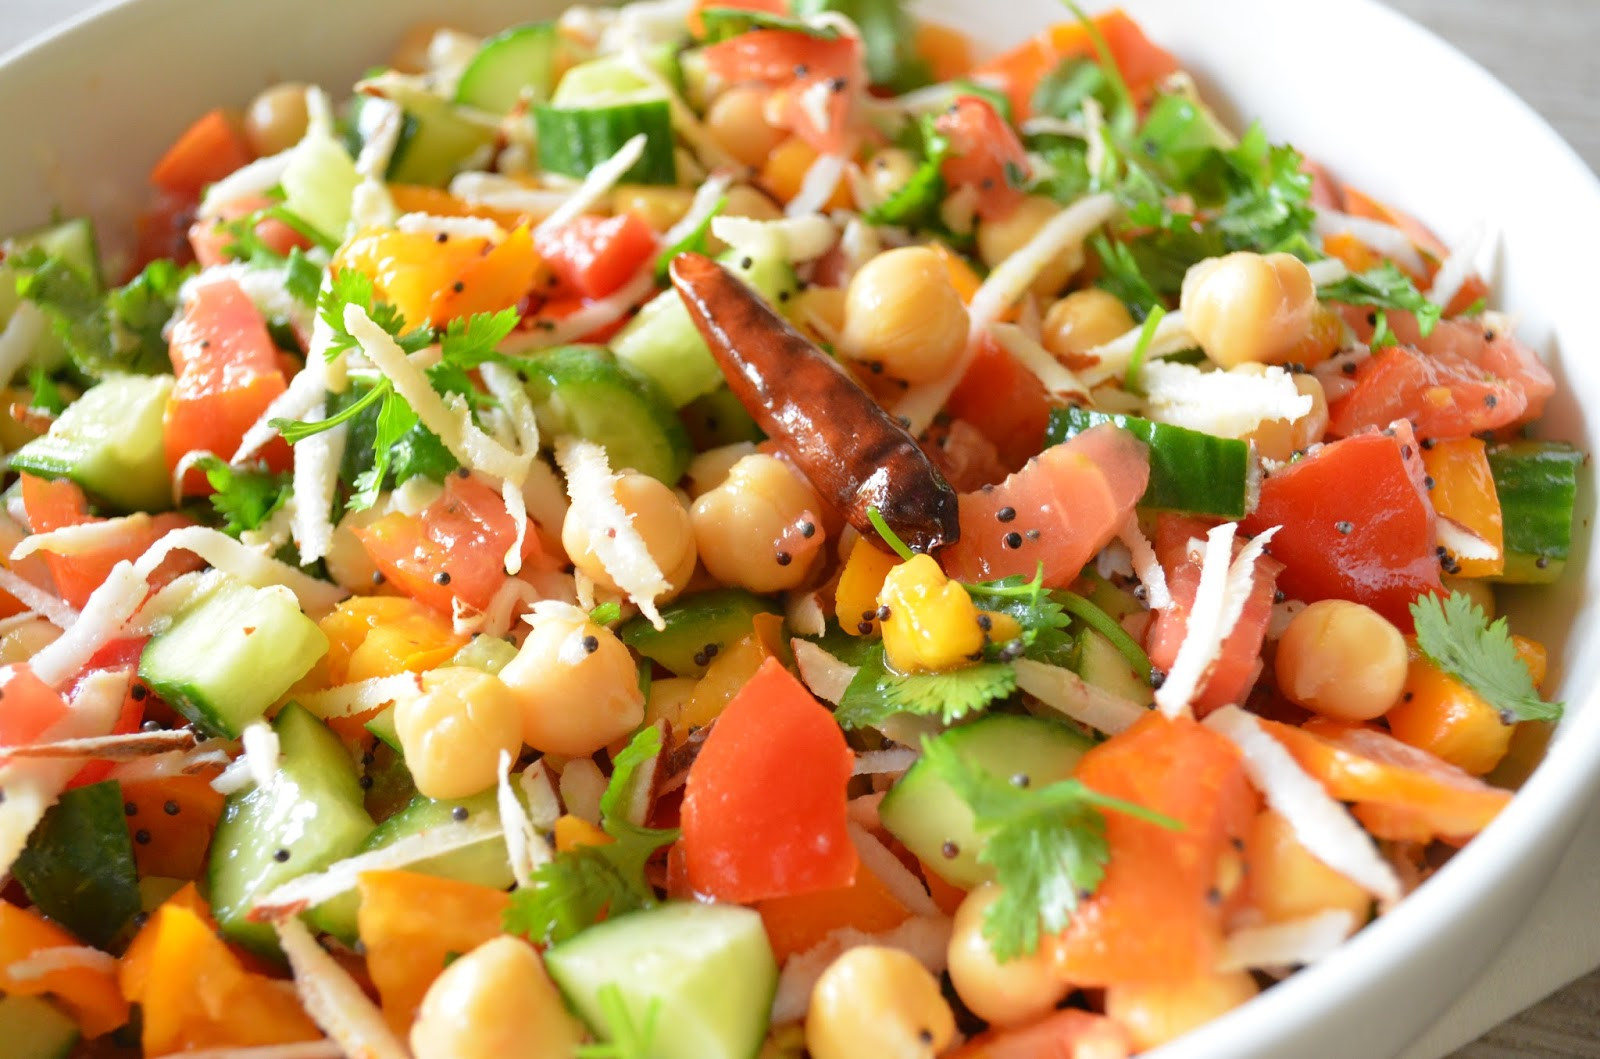 Indian Salad Recipes  Entertaining From an Ethnic Indian Kitchen Garbanzo